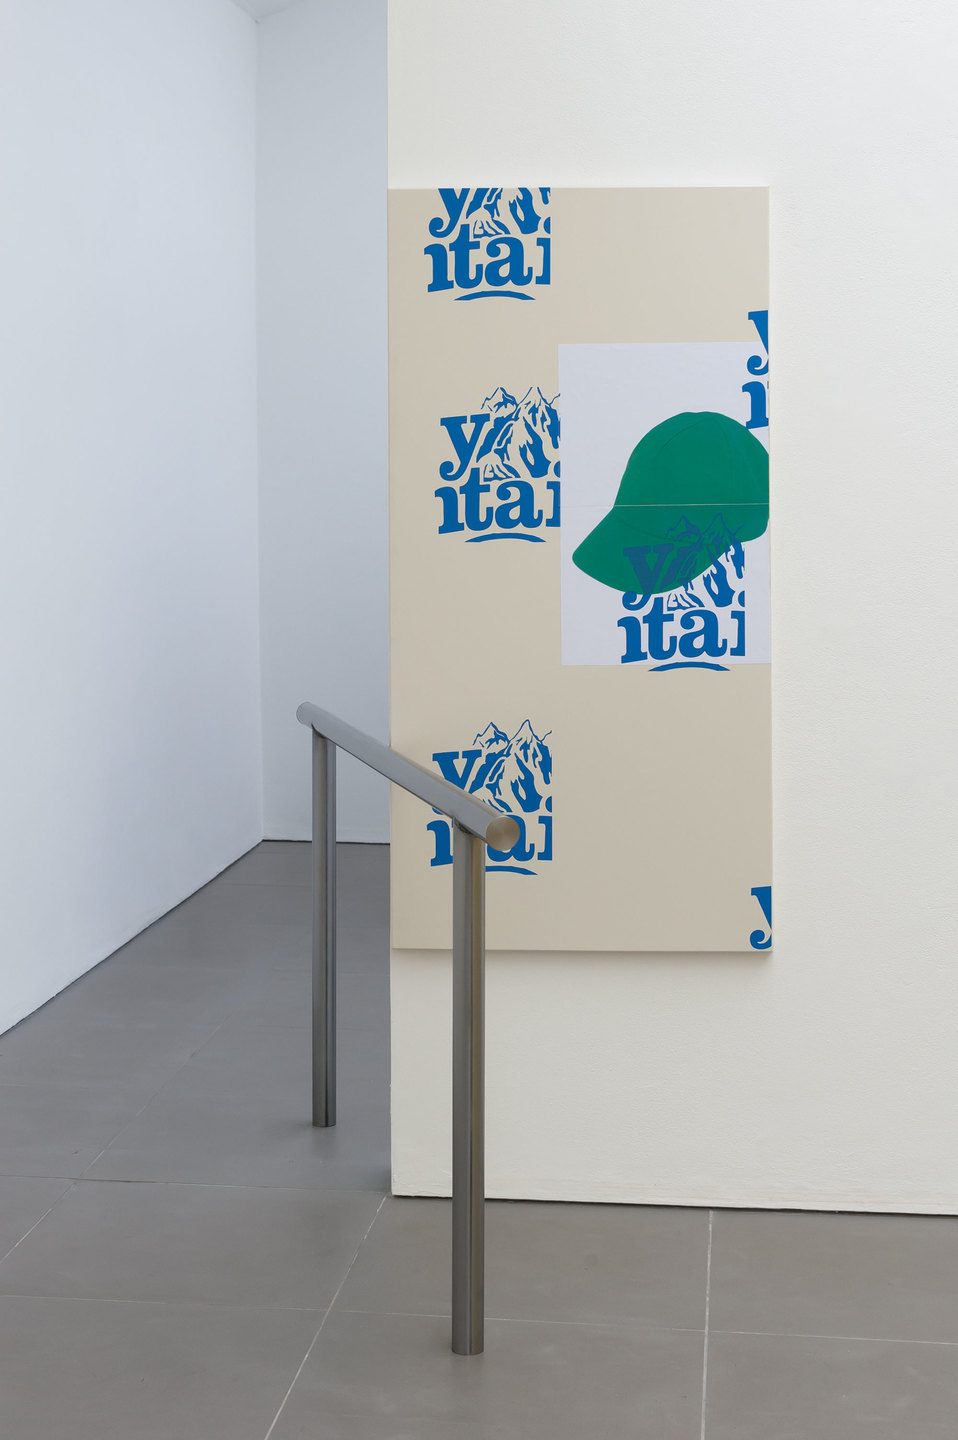 Bryan Dooley, Y-Mountain #3, 2013, Powder coated aluminium, laserjet print, silkscreen print, steel dip bar, bar (140 cm x 70 cm), print (88 cm x 165 cm), Cell Project Space